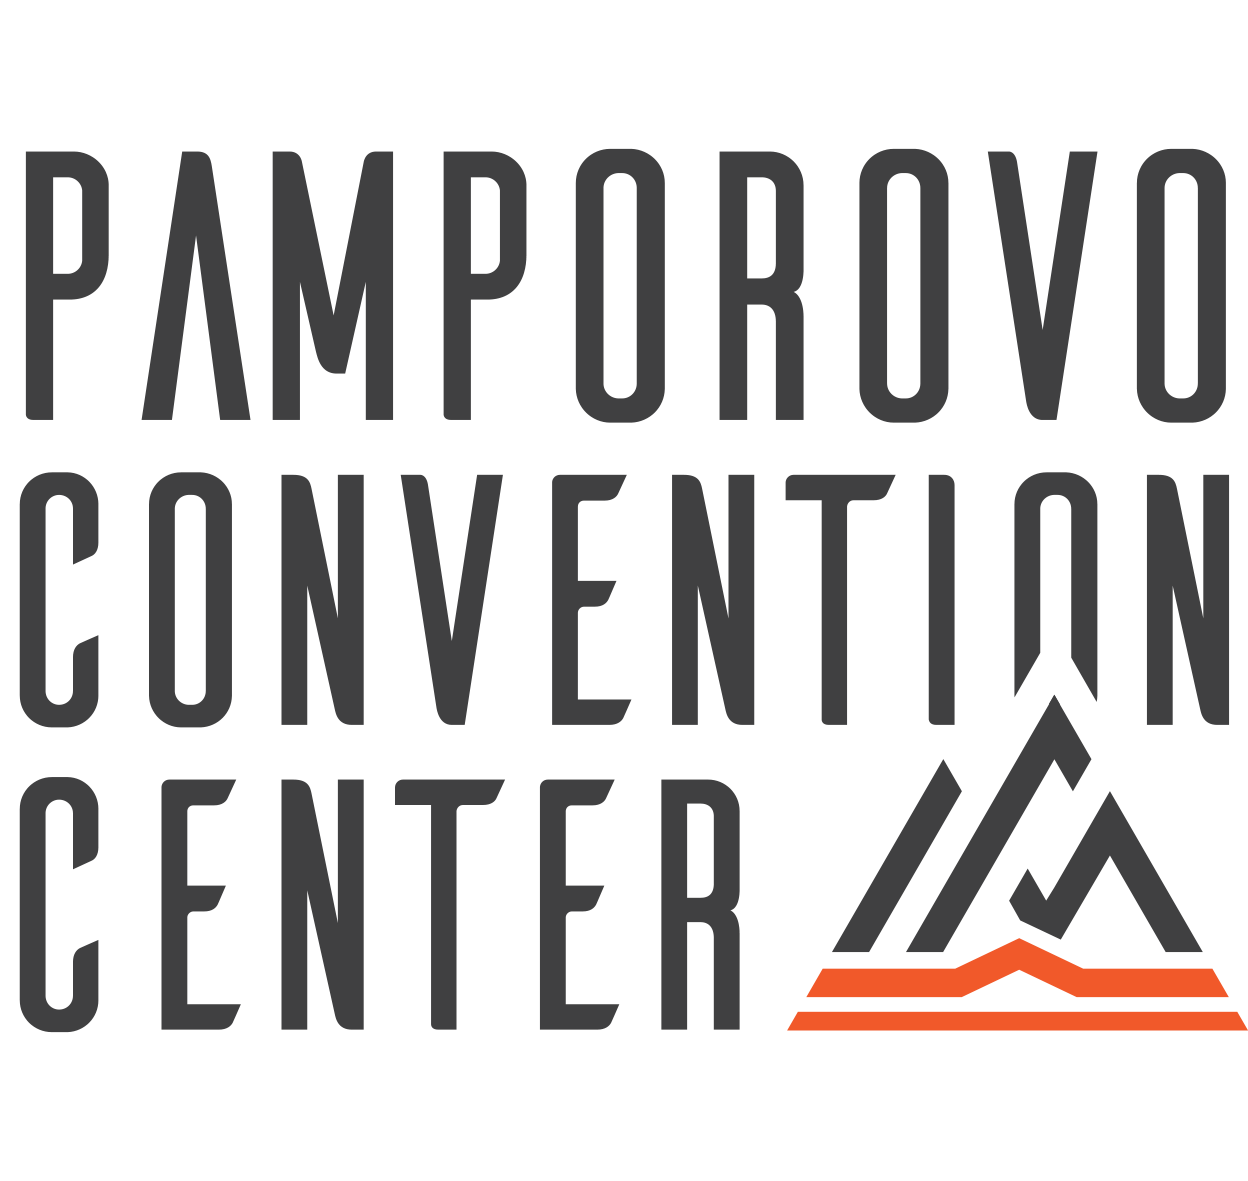 pamporovo convention center